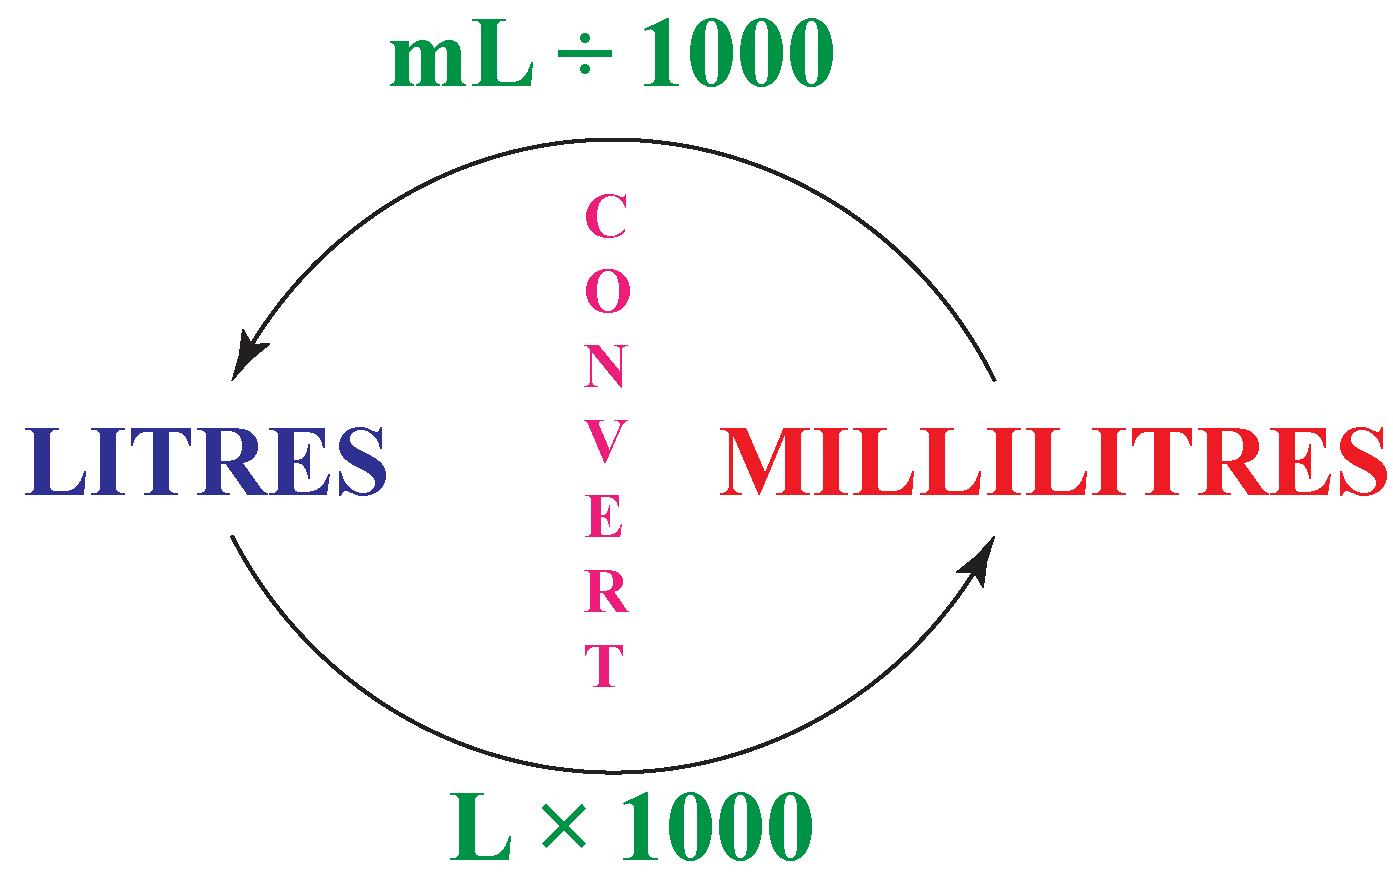 conversion from litres to millilitres